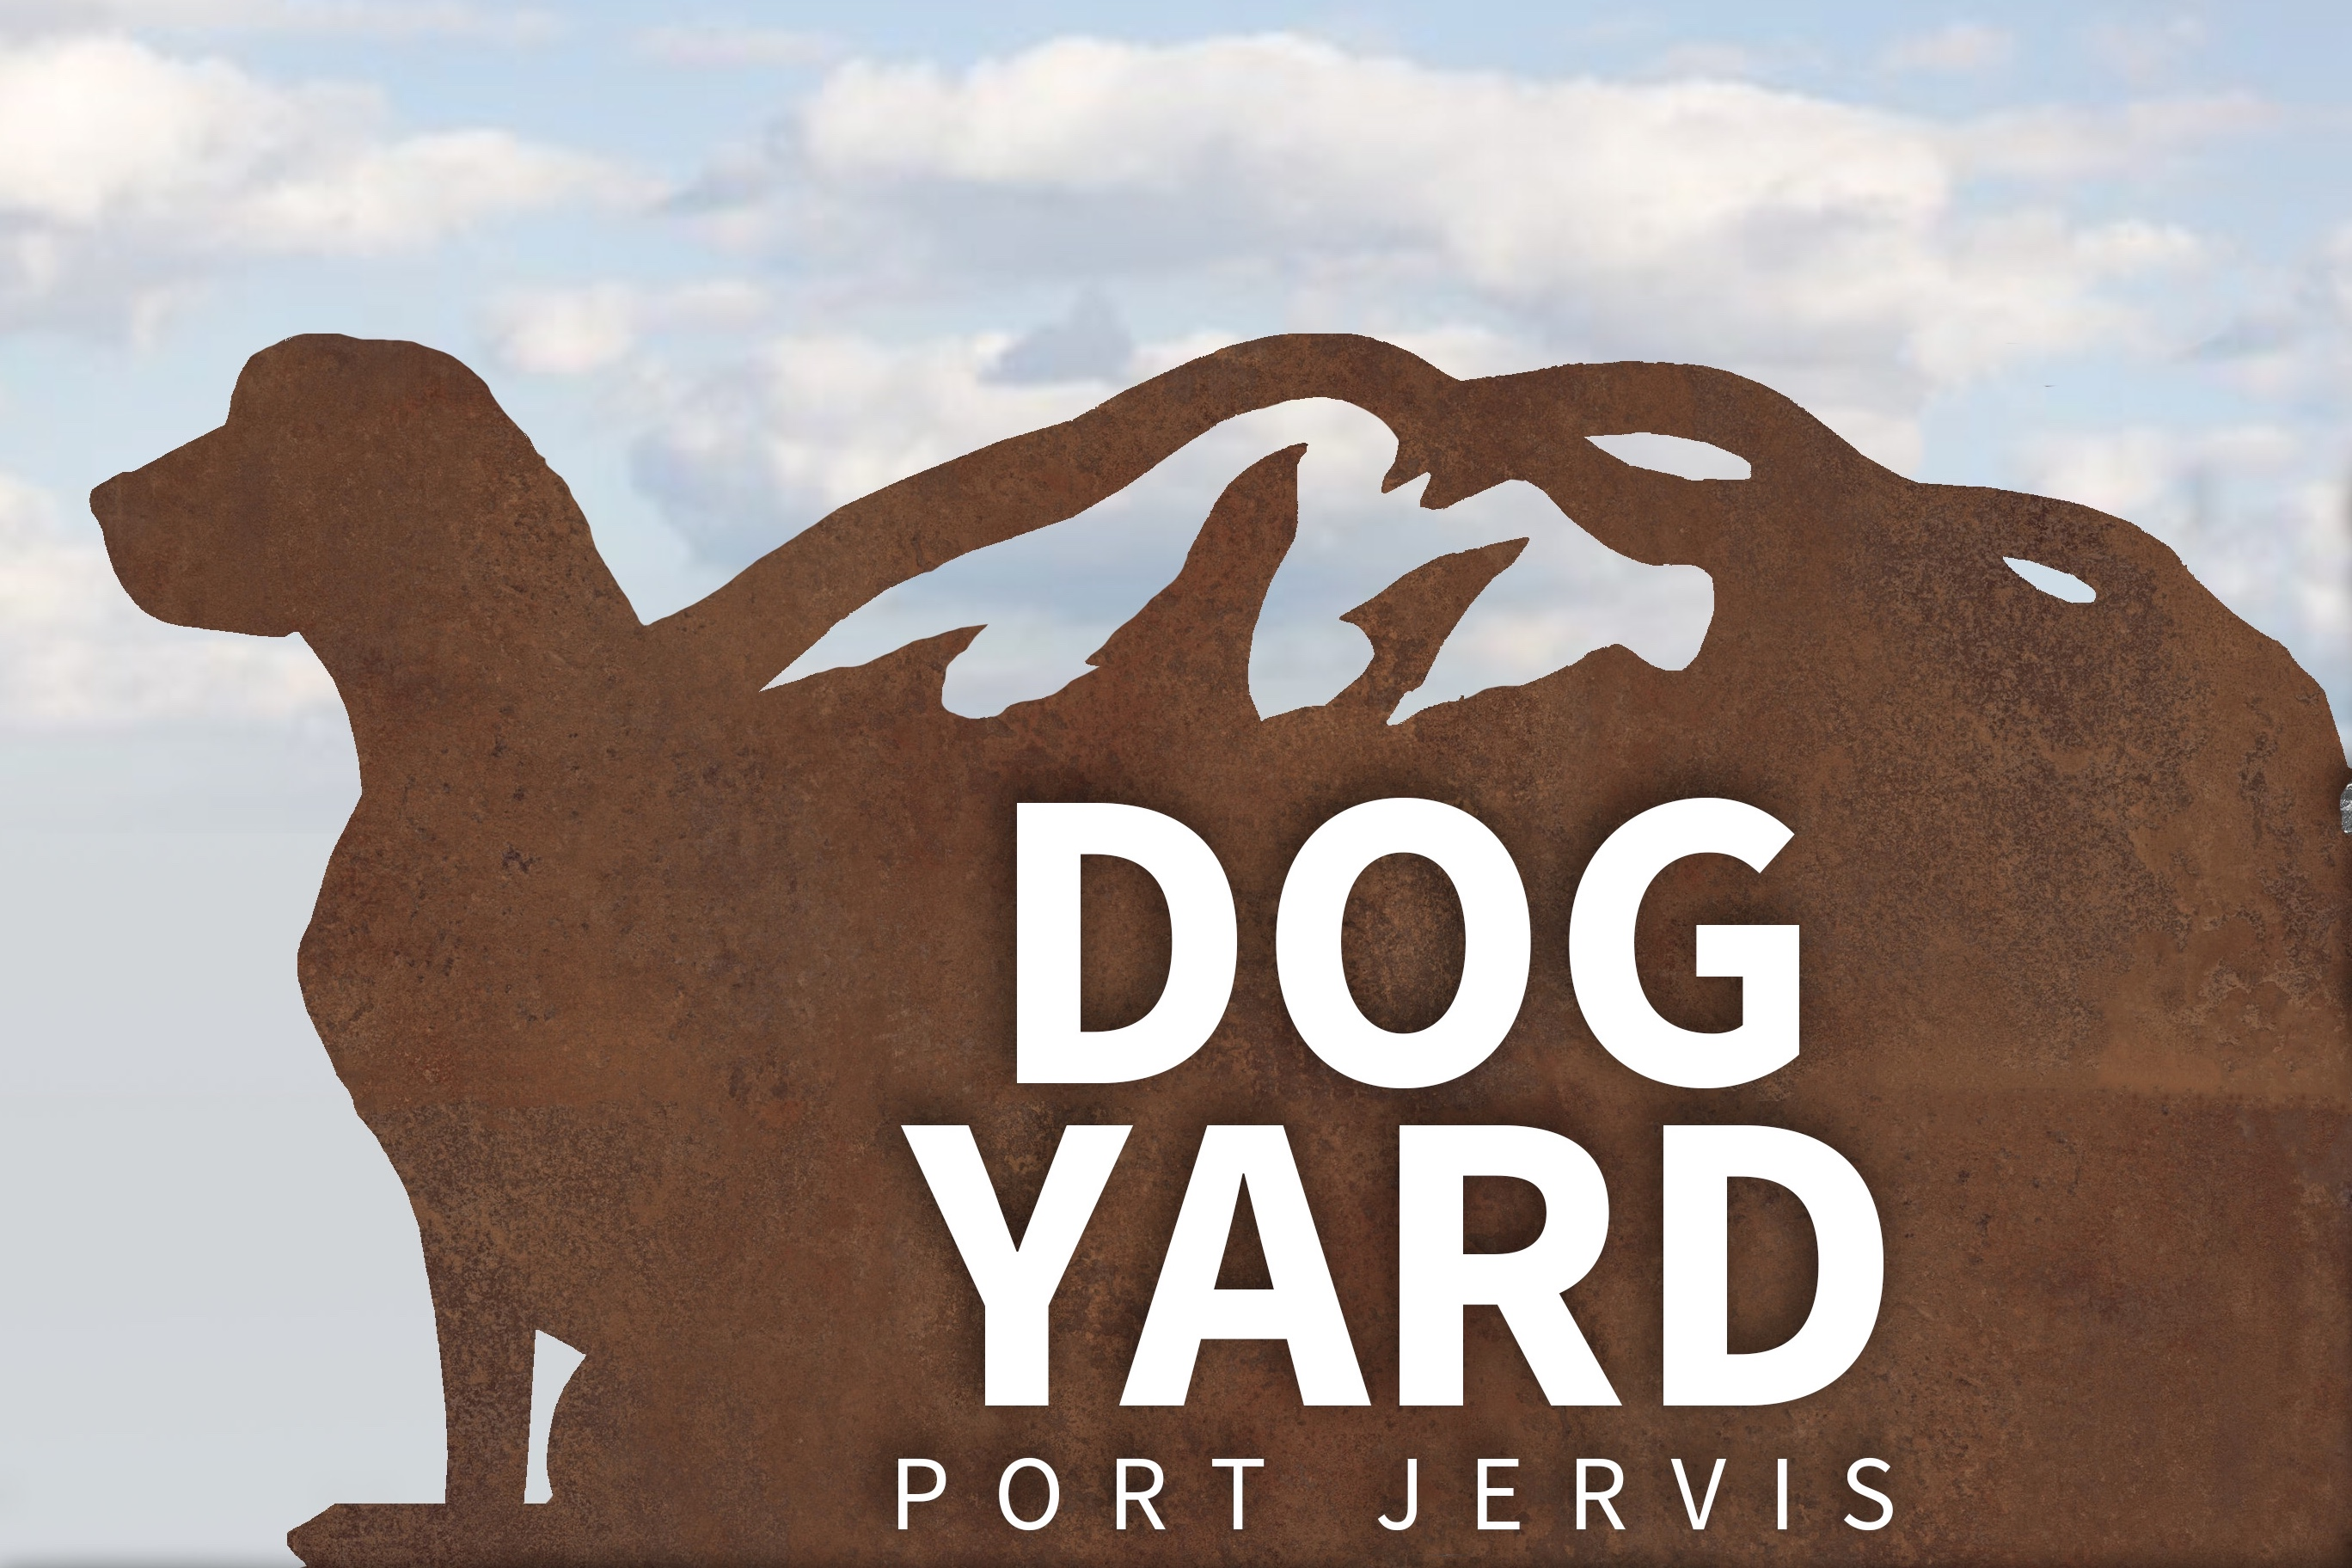 https://www.portjervisny.org/slider/port-jervis-dog-yard-information/